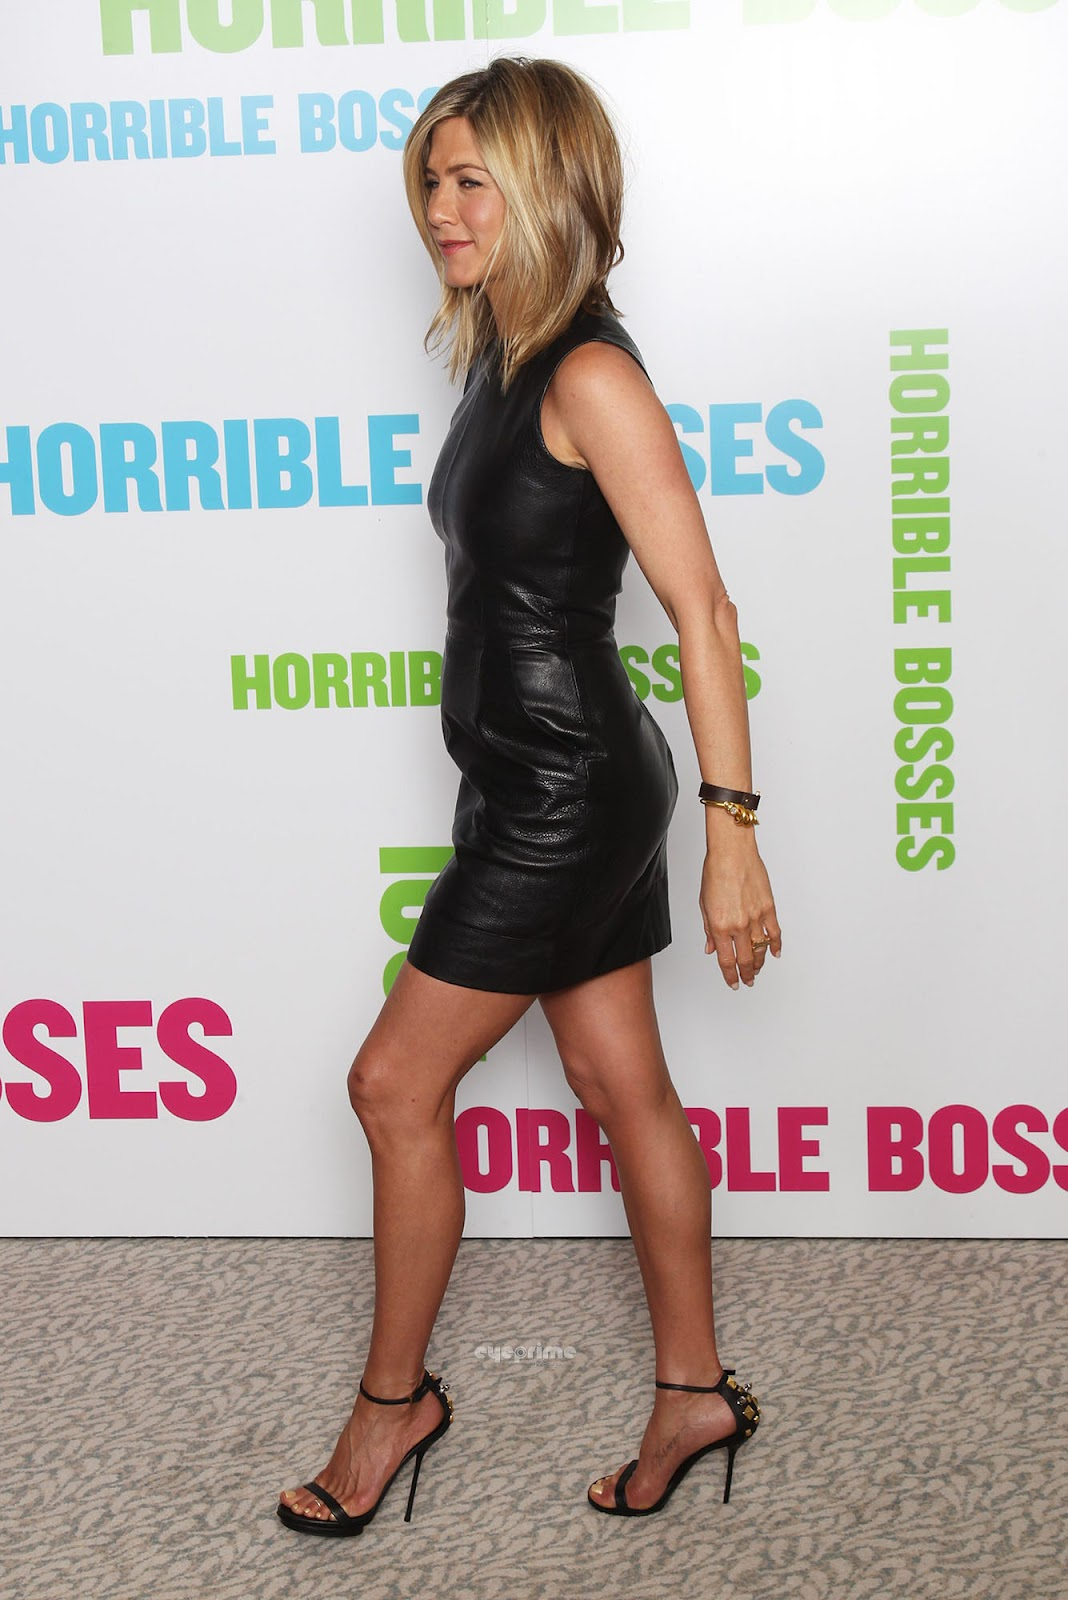 http://3.bp.blogspot.com/-lClzqkZrj4Q/T3nIUqpkKqI/AAAAAAAAFKs/ky6hZZhqNmQ/s1600/Jennifer-Aniston-Horrible-Bosses-Photocall-in-London-July-20-HQ-jennifer-aniston-23908808-1335-2000.jpg